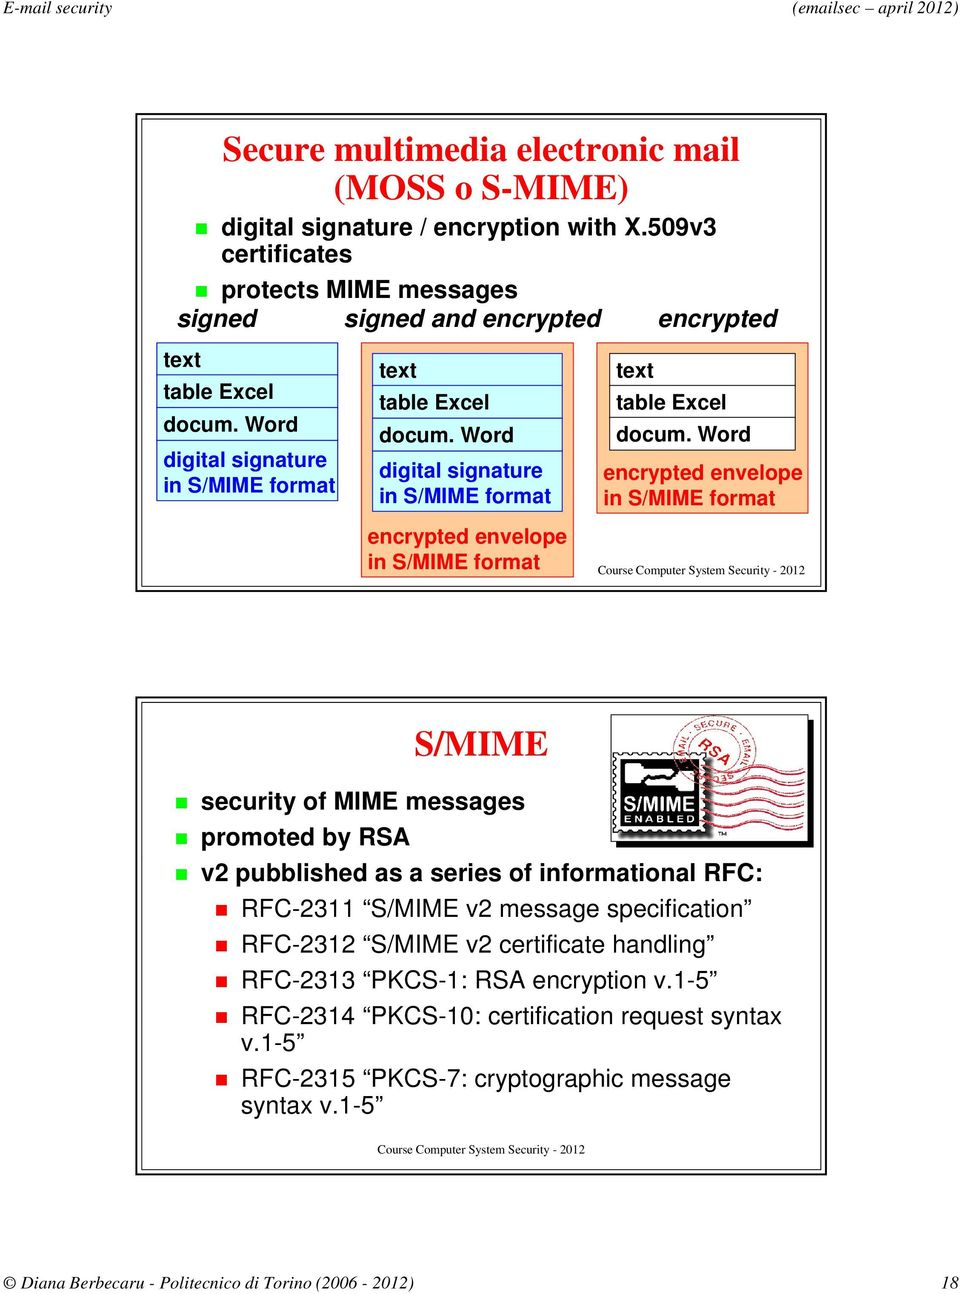 Word encrypted envelope in S/MIME format S/MIME security of MIME messages promoted by RSA v2 pubblished as a series of informational RFC: RFC-2311 S/MIME v2 message specification RFC-2312